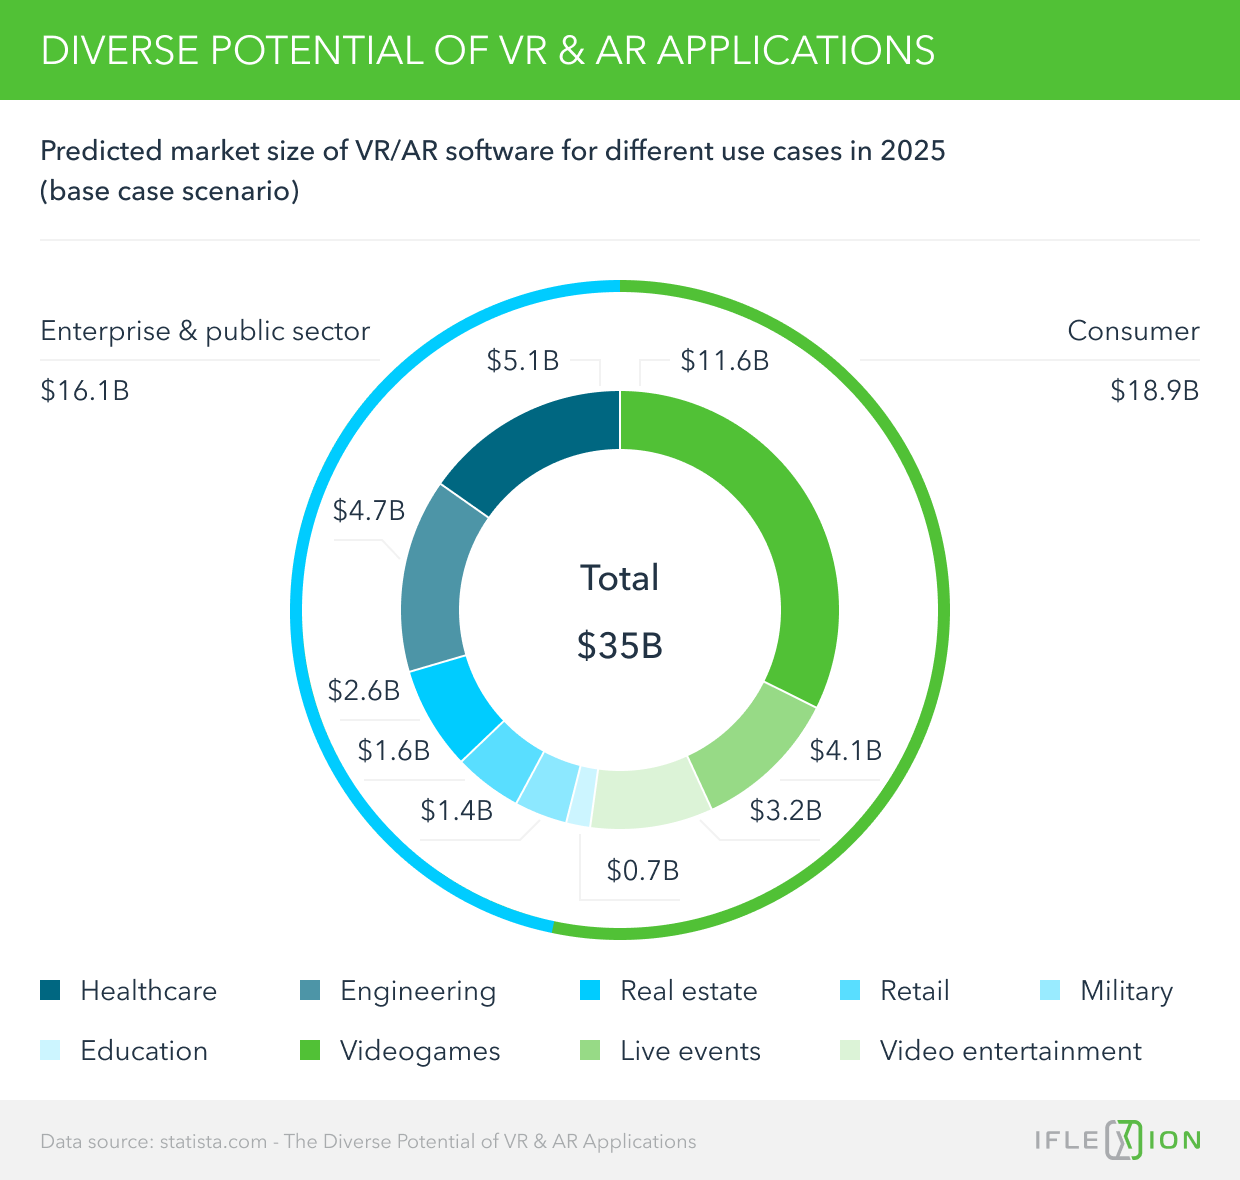 Diverse Potential of VR & AR Applications